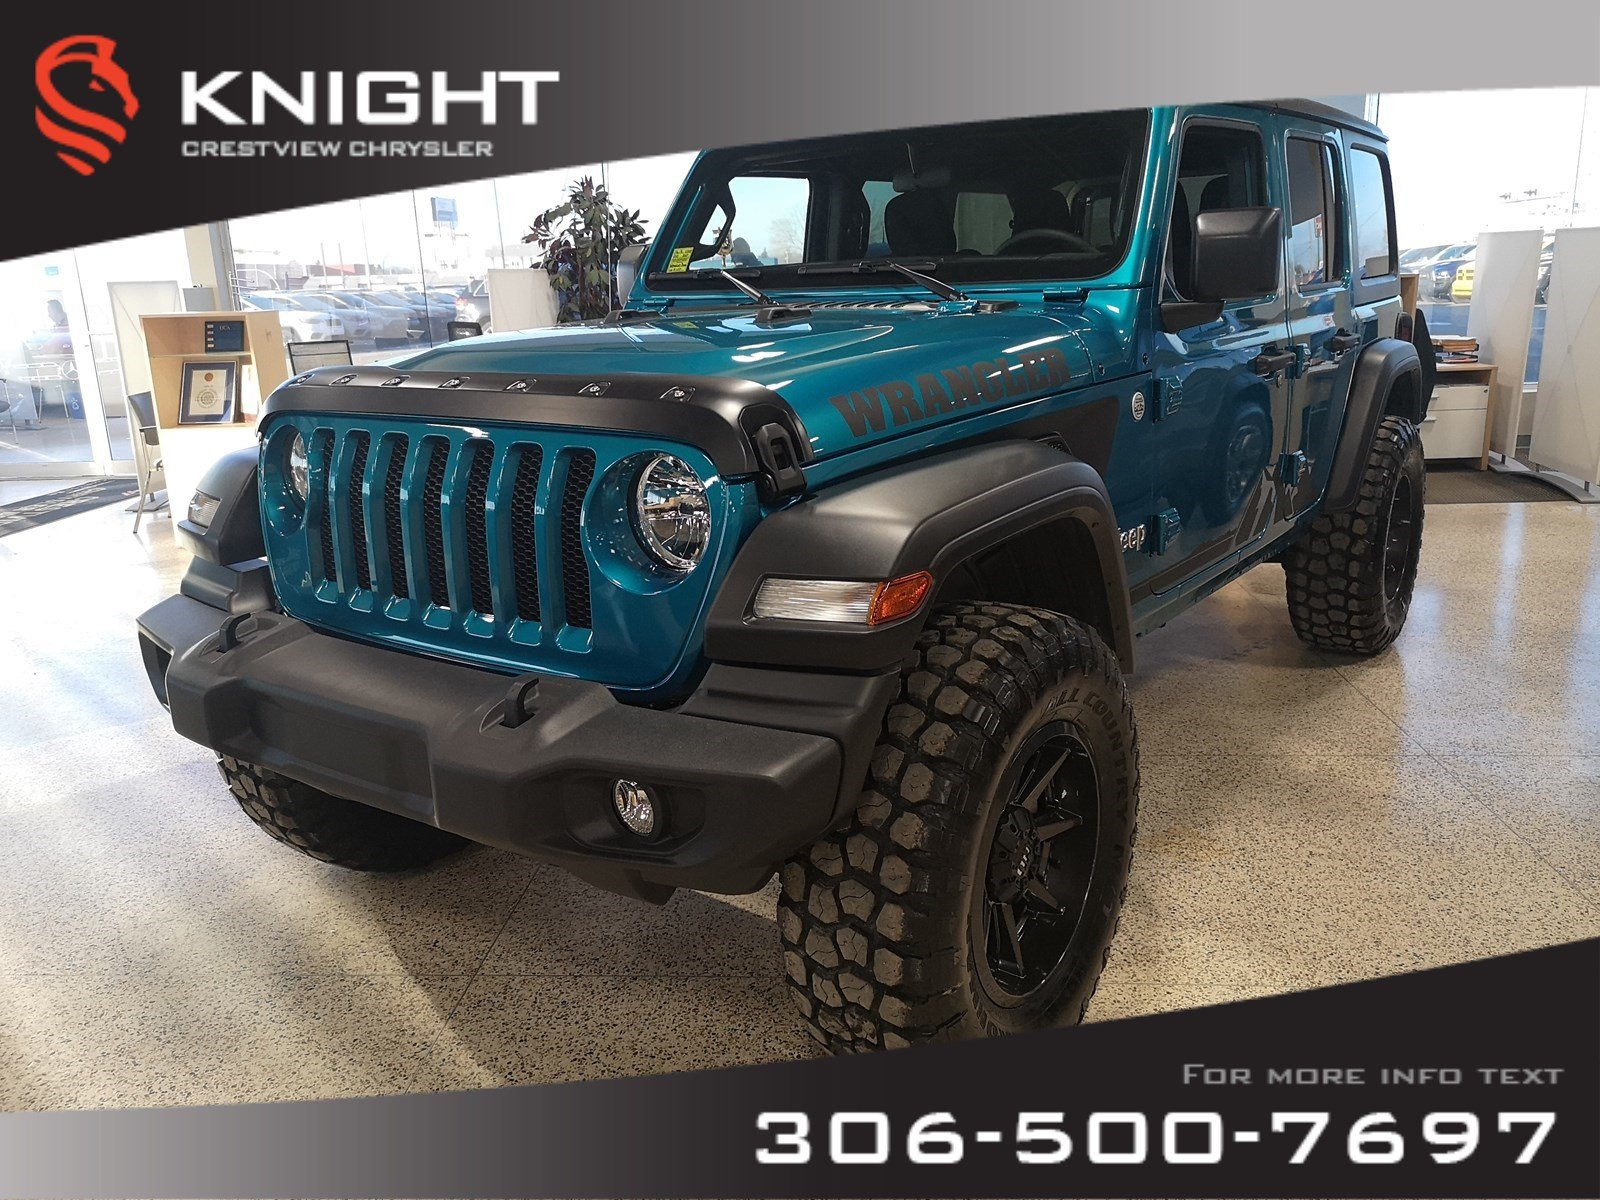 Jeep Wrangler Lift Kits >> New 2020 Jeep Wrangler Unlimited Sport S Lift Kit New Wheels And Tires 4wd Convertible